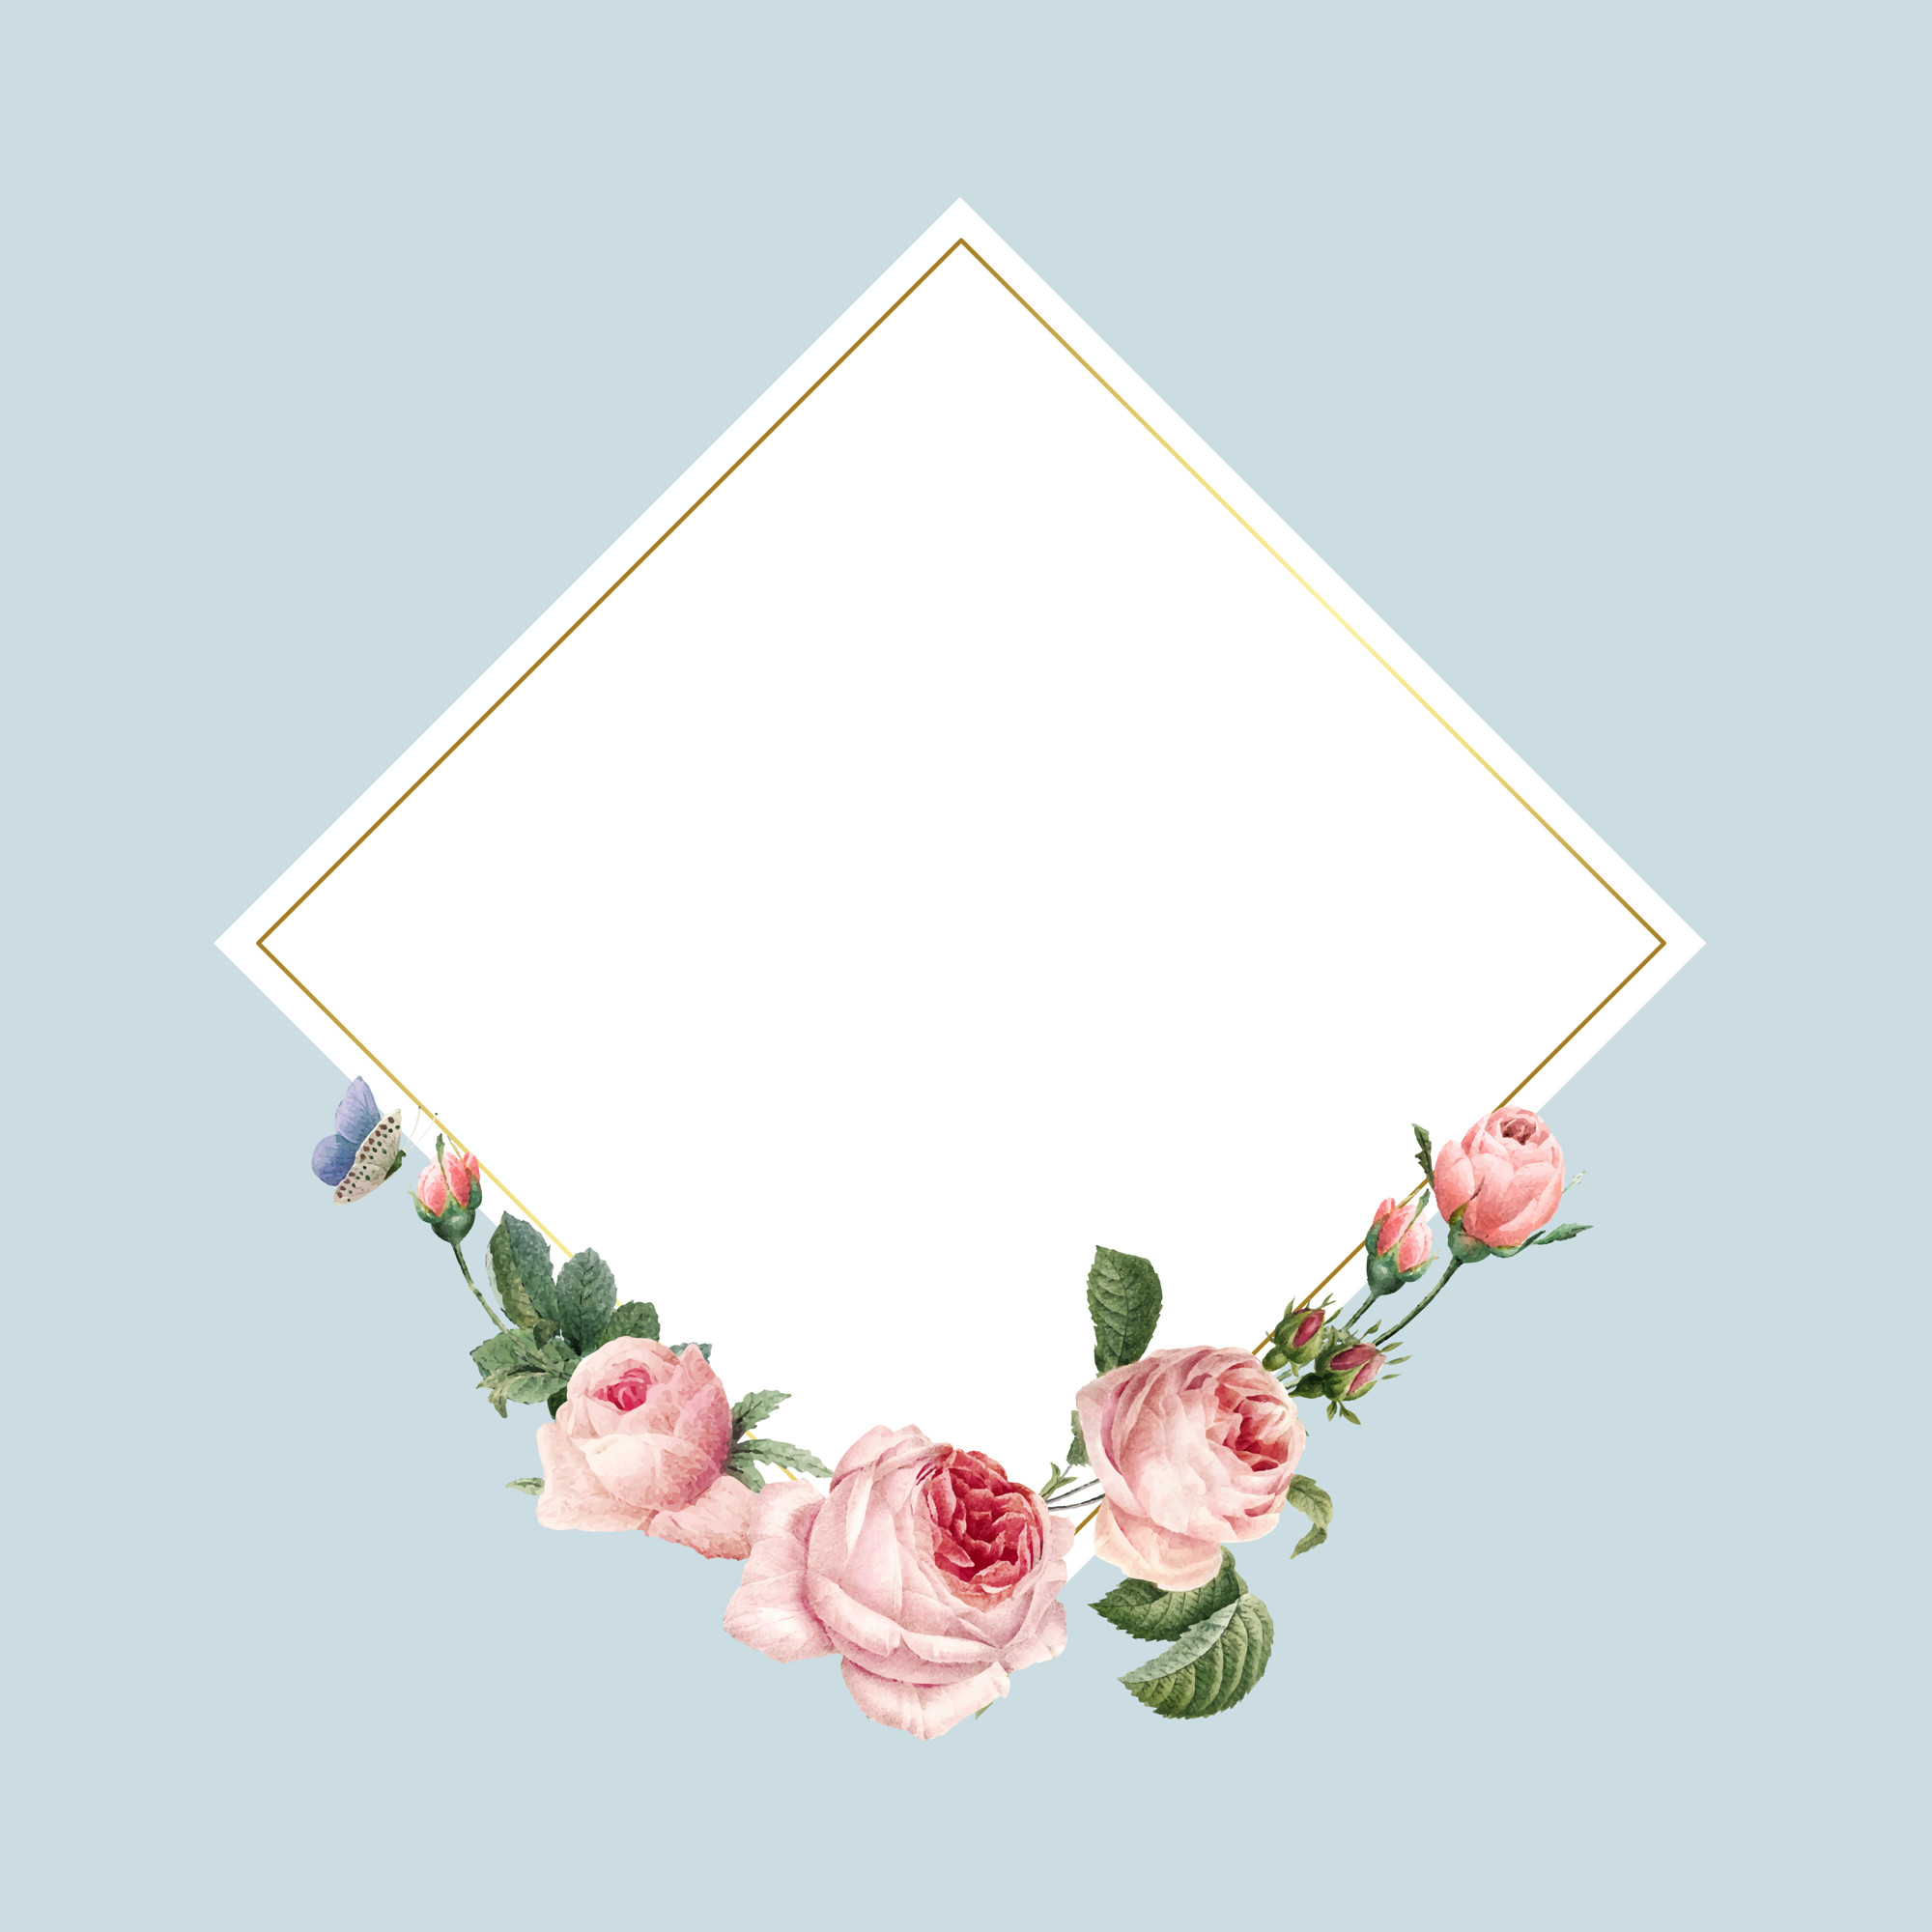 Blank square pink roses frame on blue background